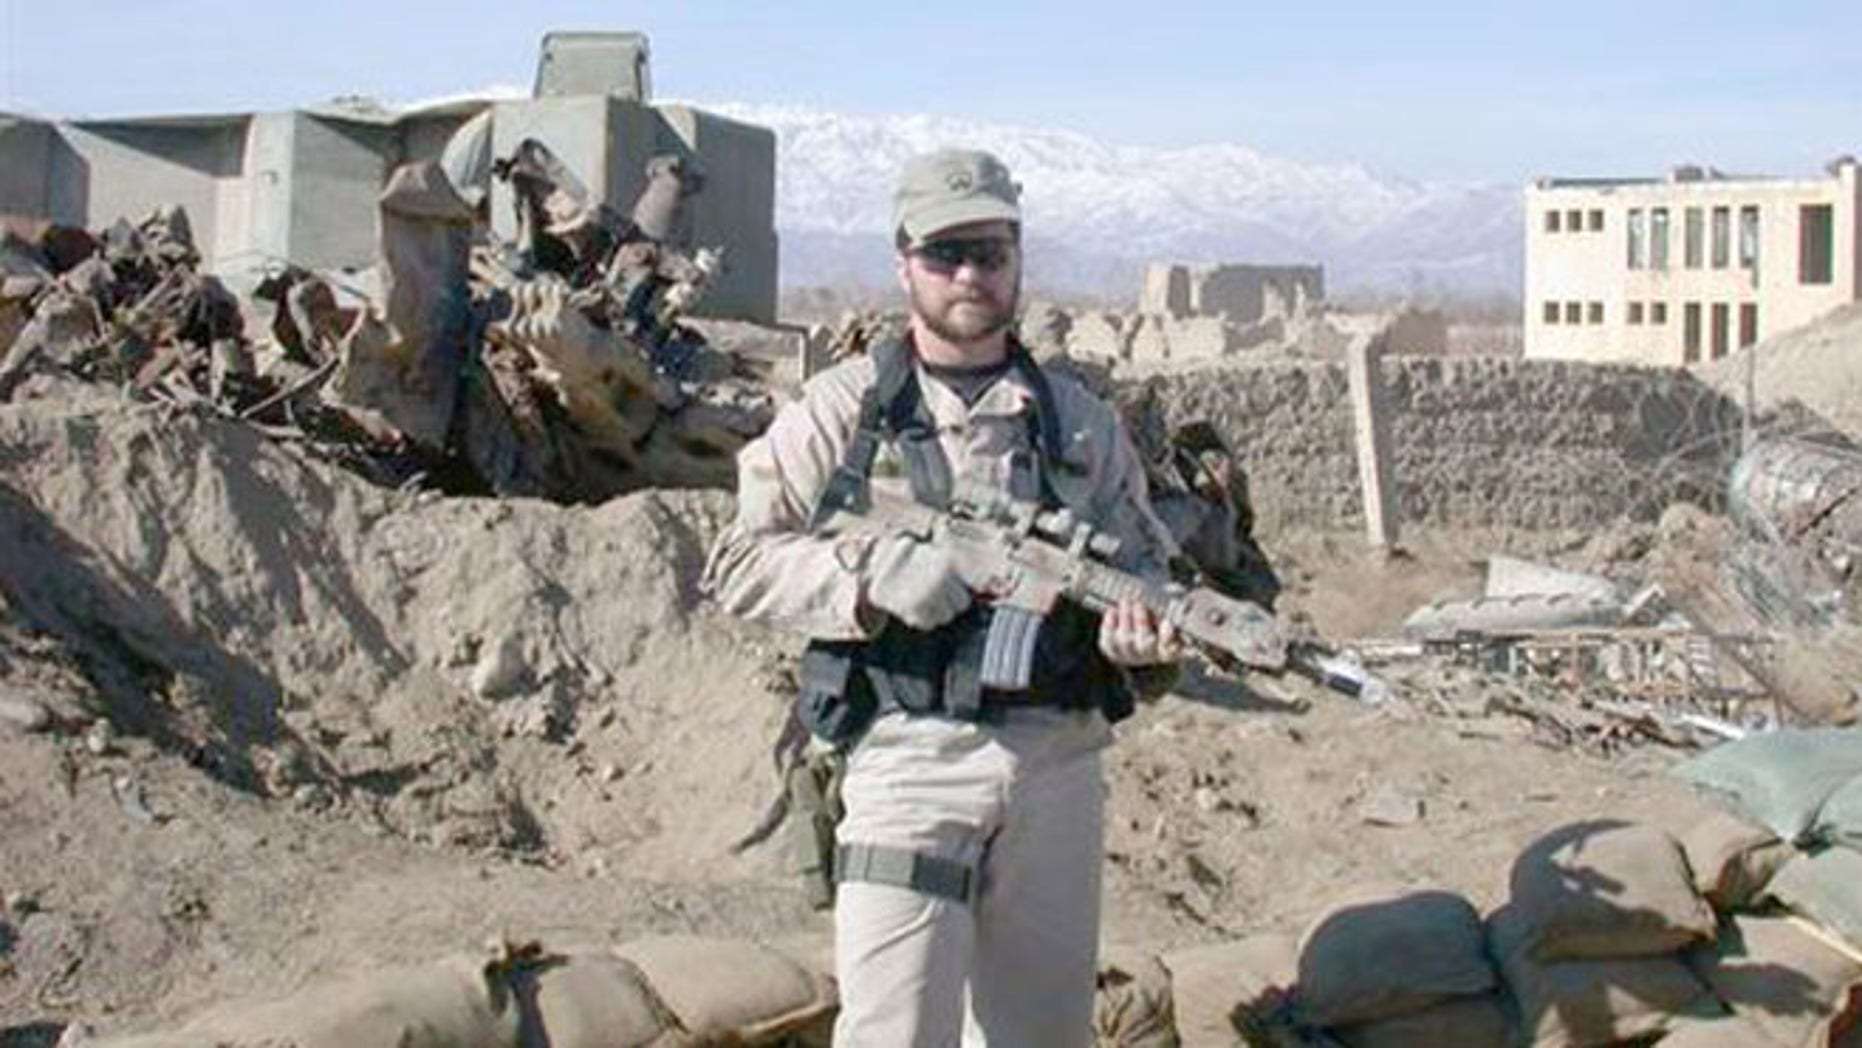 Tech. Sgt. John Chapman is being considered for the Medal of Honor. (U.S. Air Force)